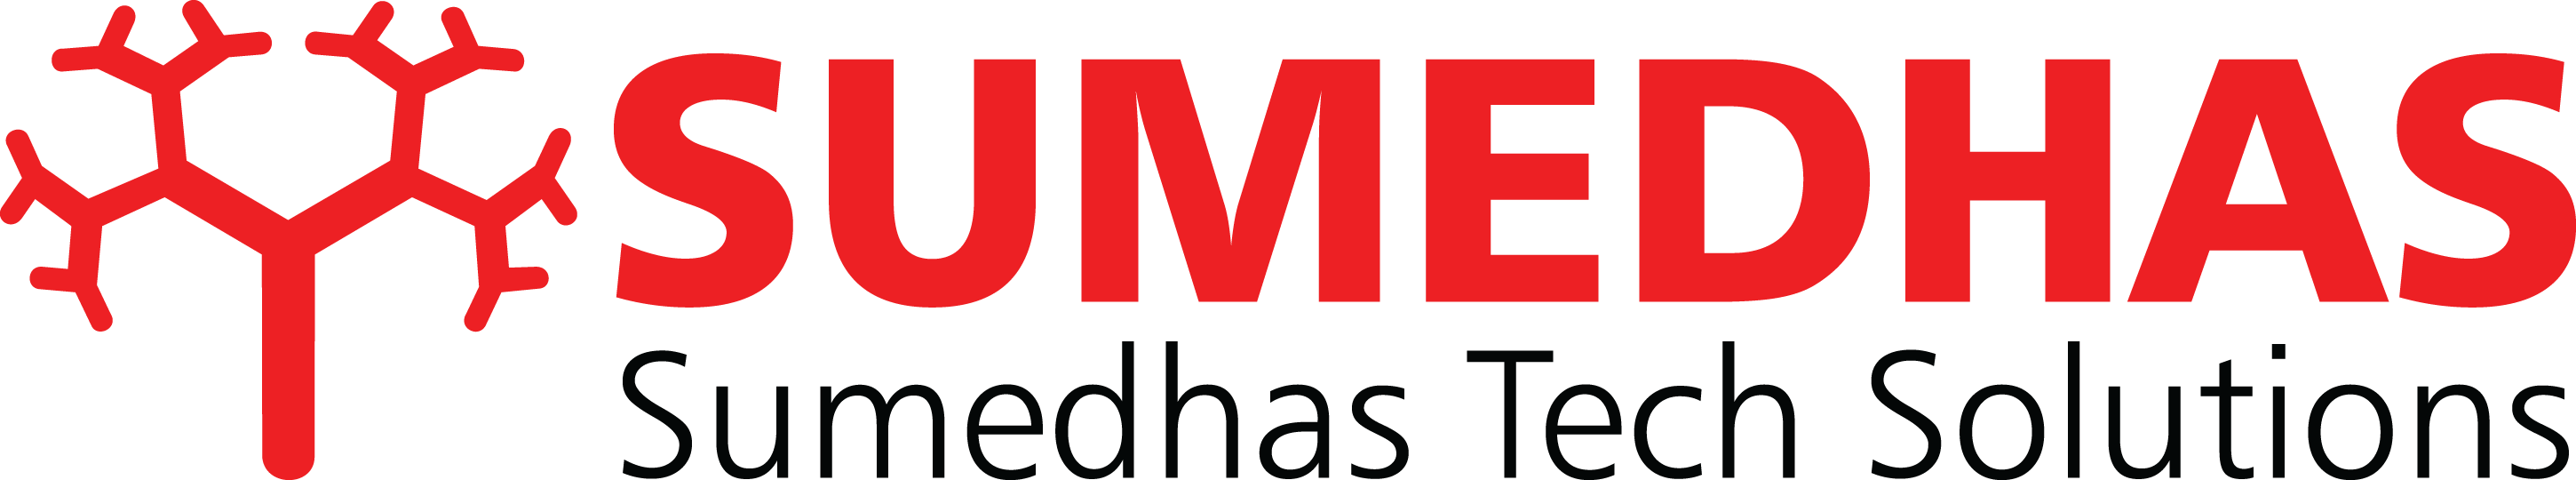 Sumedhas Tech Solutions Pvt Ltd